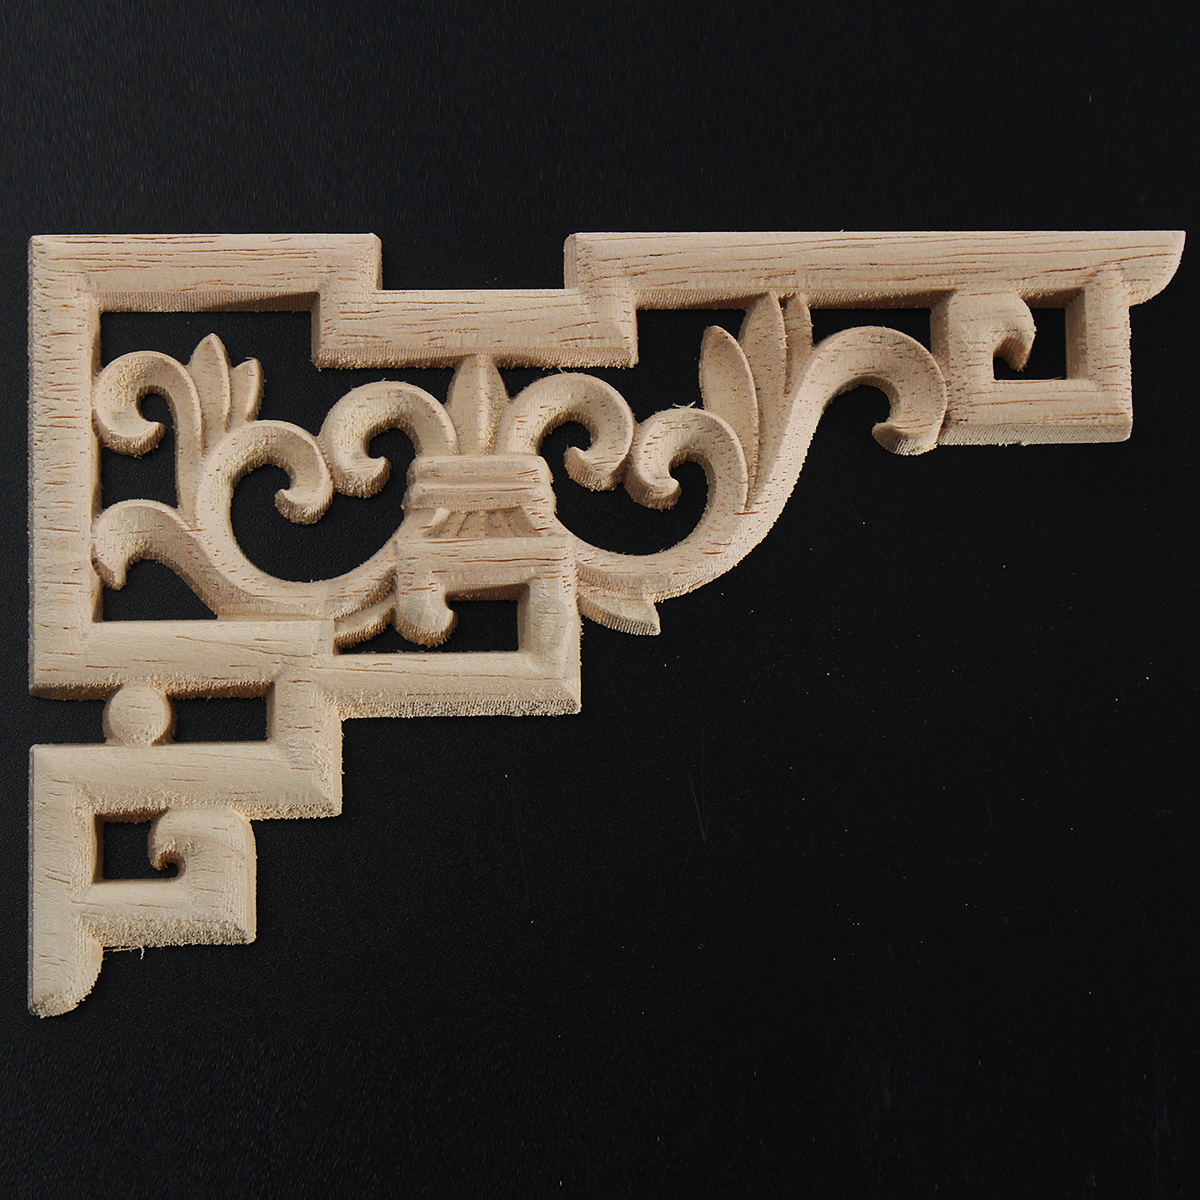 2 4pcs 15x10cm wood carved corner furniture onlay applique for Applique furniture decoration